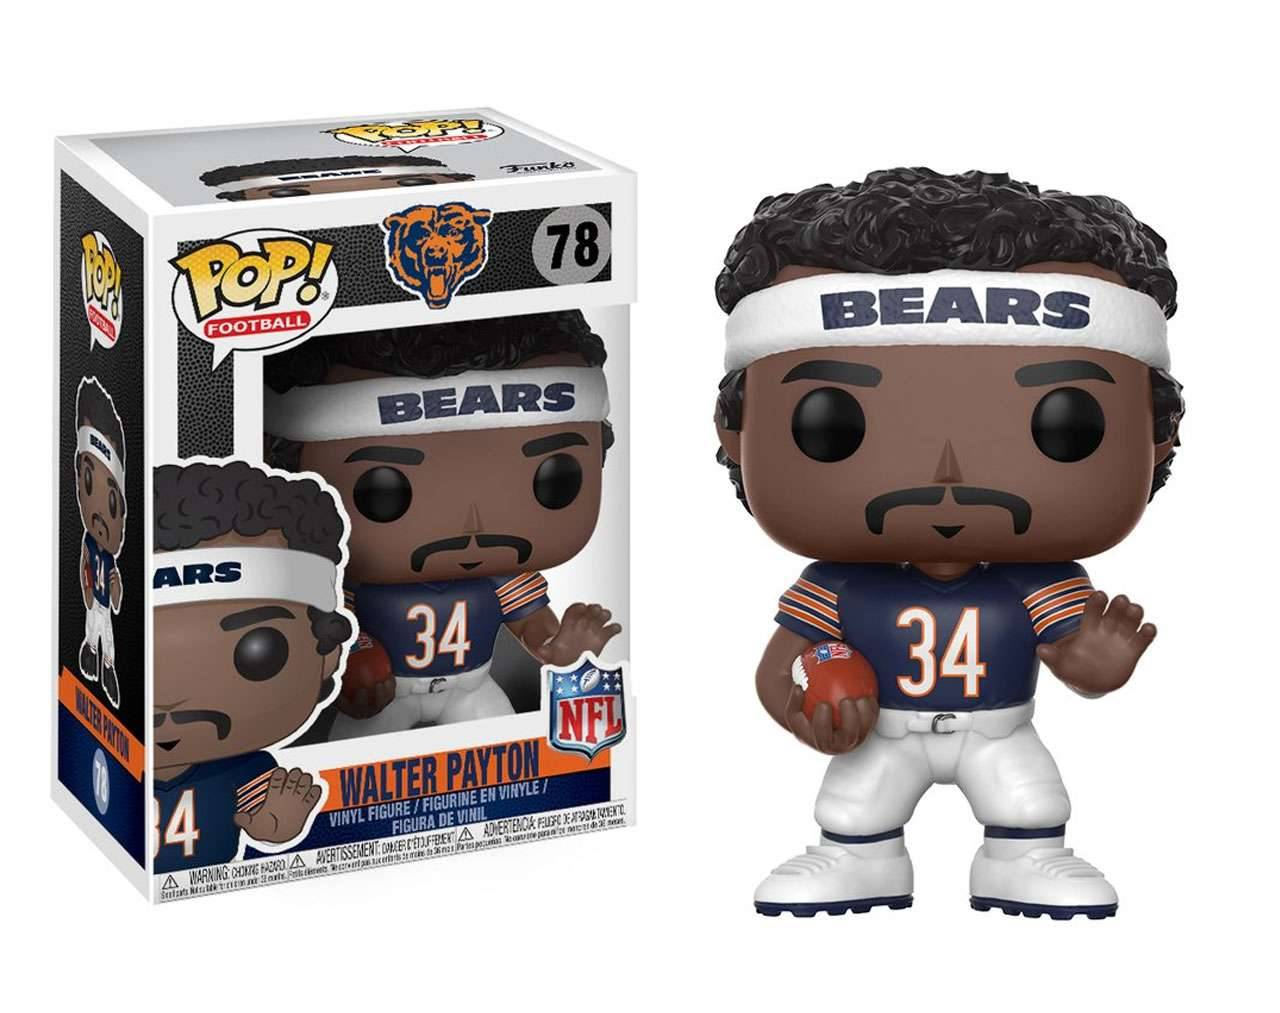 Walter Payton NFL Legends Pop! Vinyl